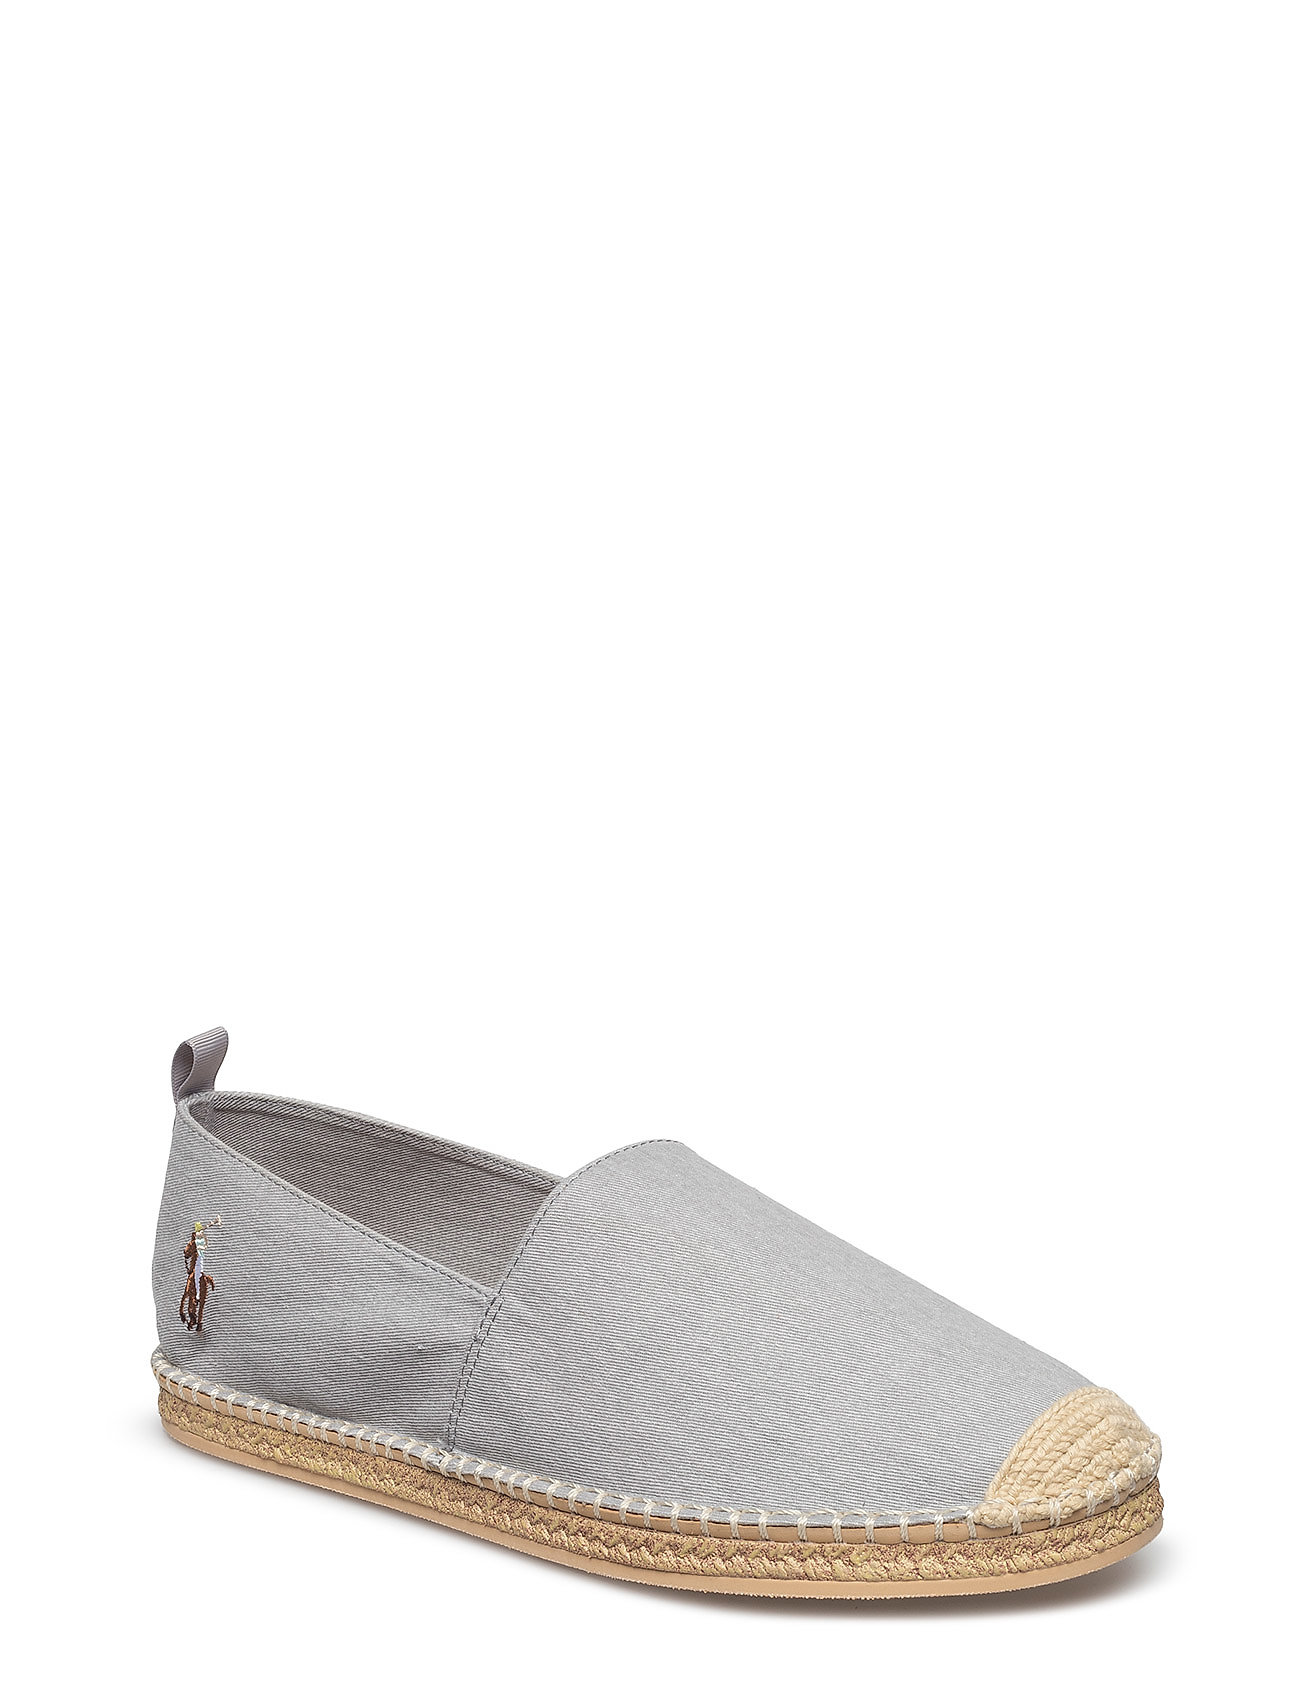 Polo Ralph Lauren BARRON WASHED-TWILL ESPADRILLE - SOFT GREY